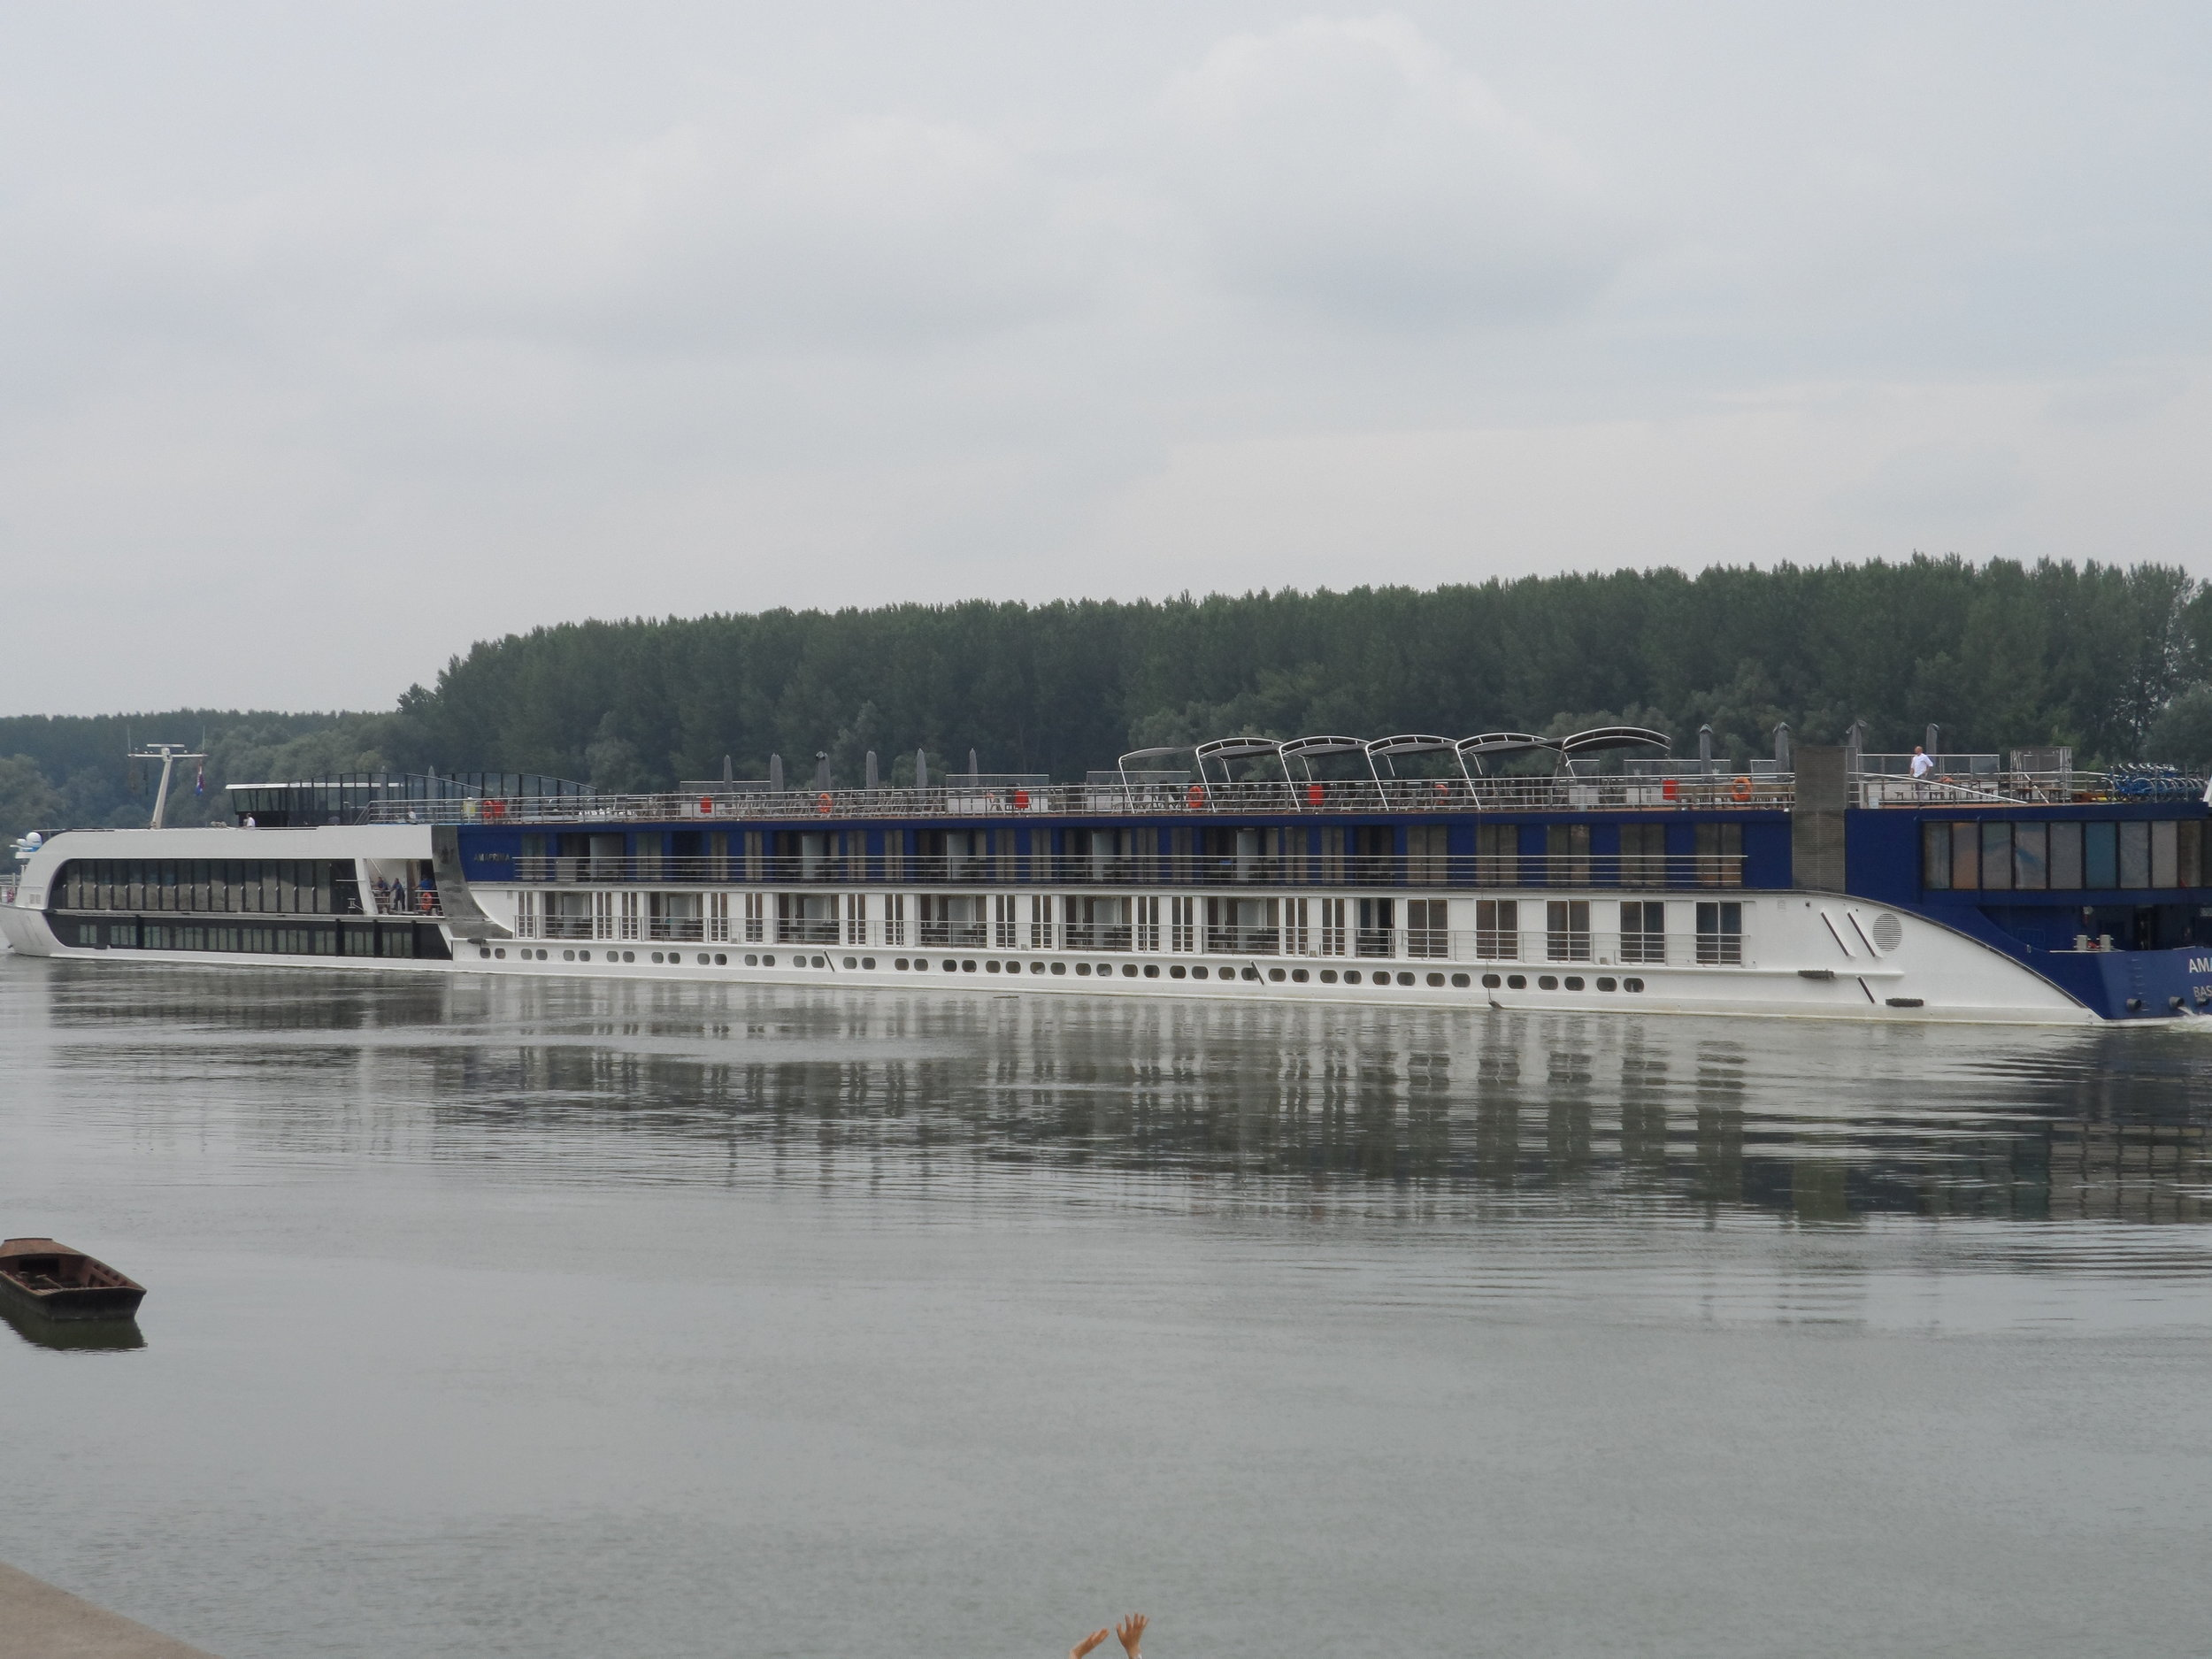 A much smaller luxury rivership—holds 156 passengers—what a size difference between this vessel and an ocean cruise ship!